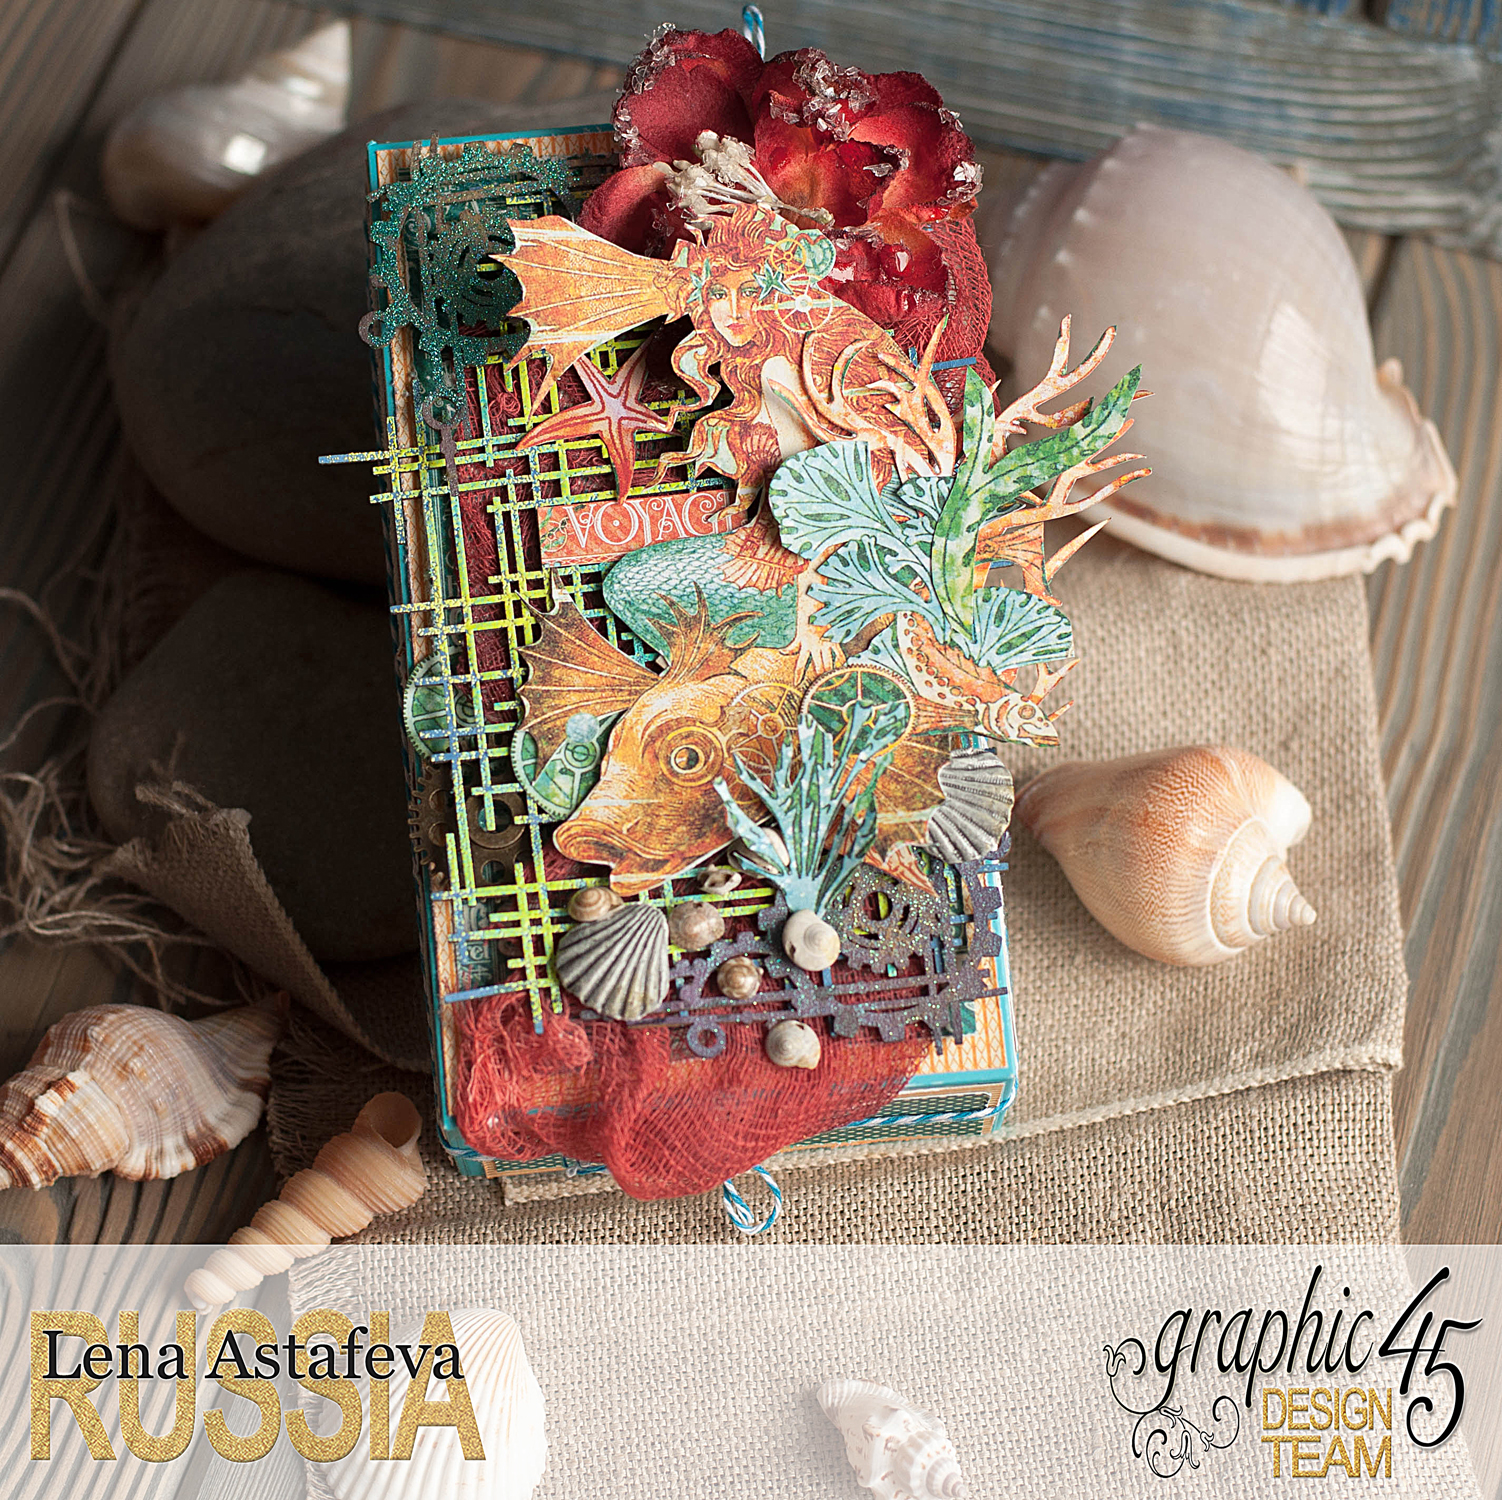 Box-Voyage Beneath the Sea-Graphic 45- by Lena Astafeva-9.jpg